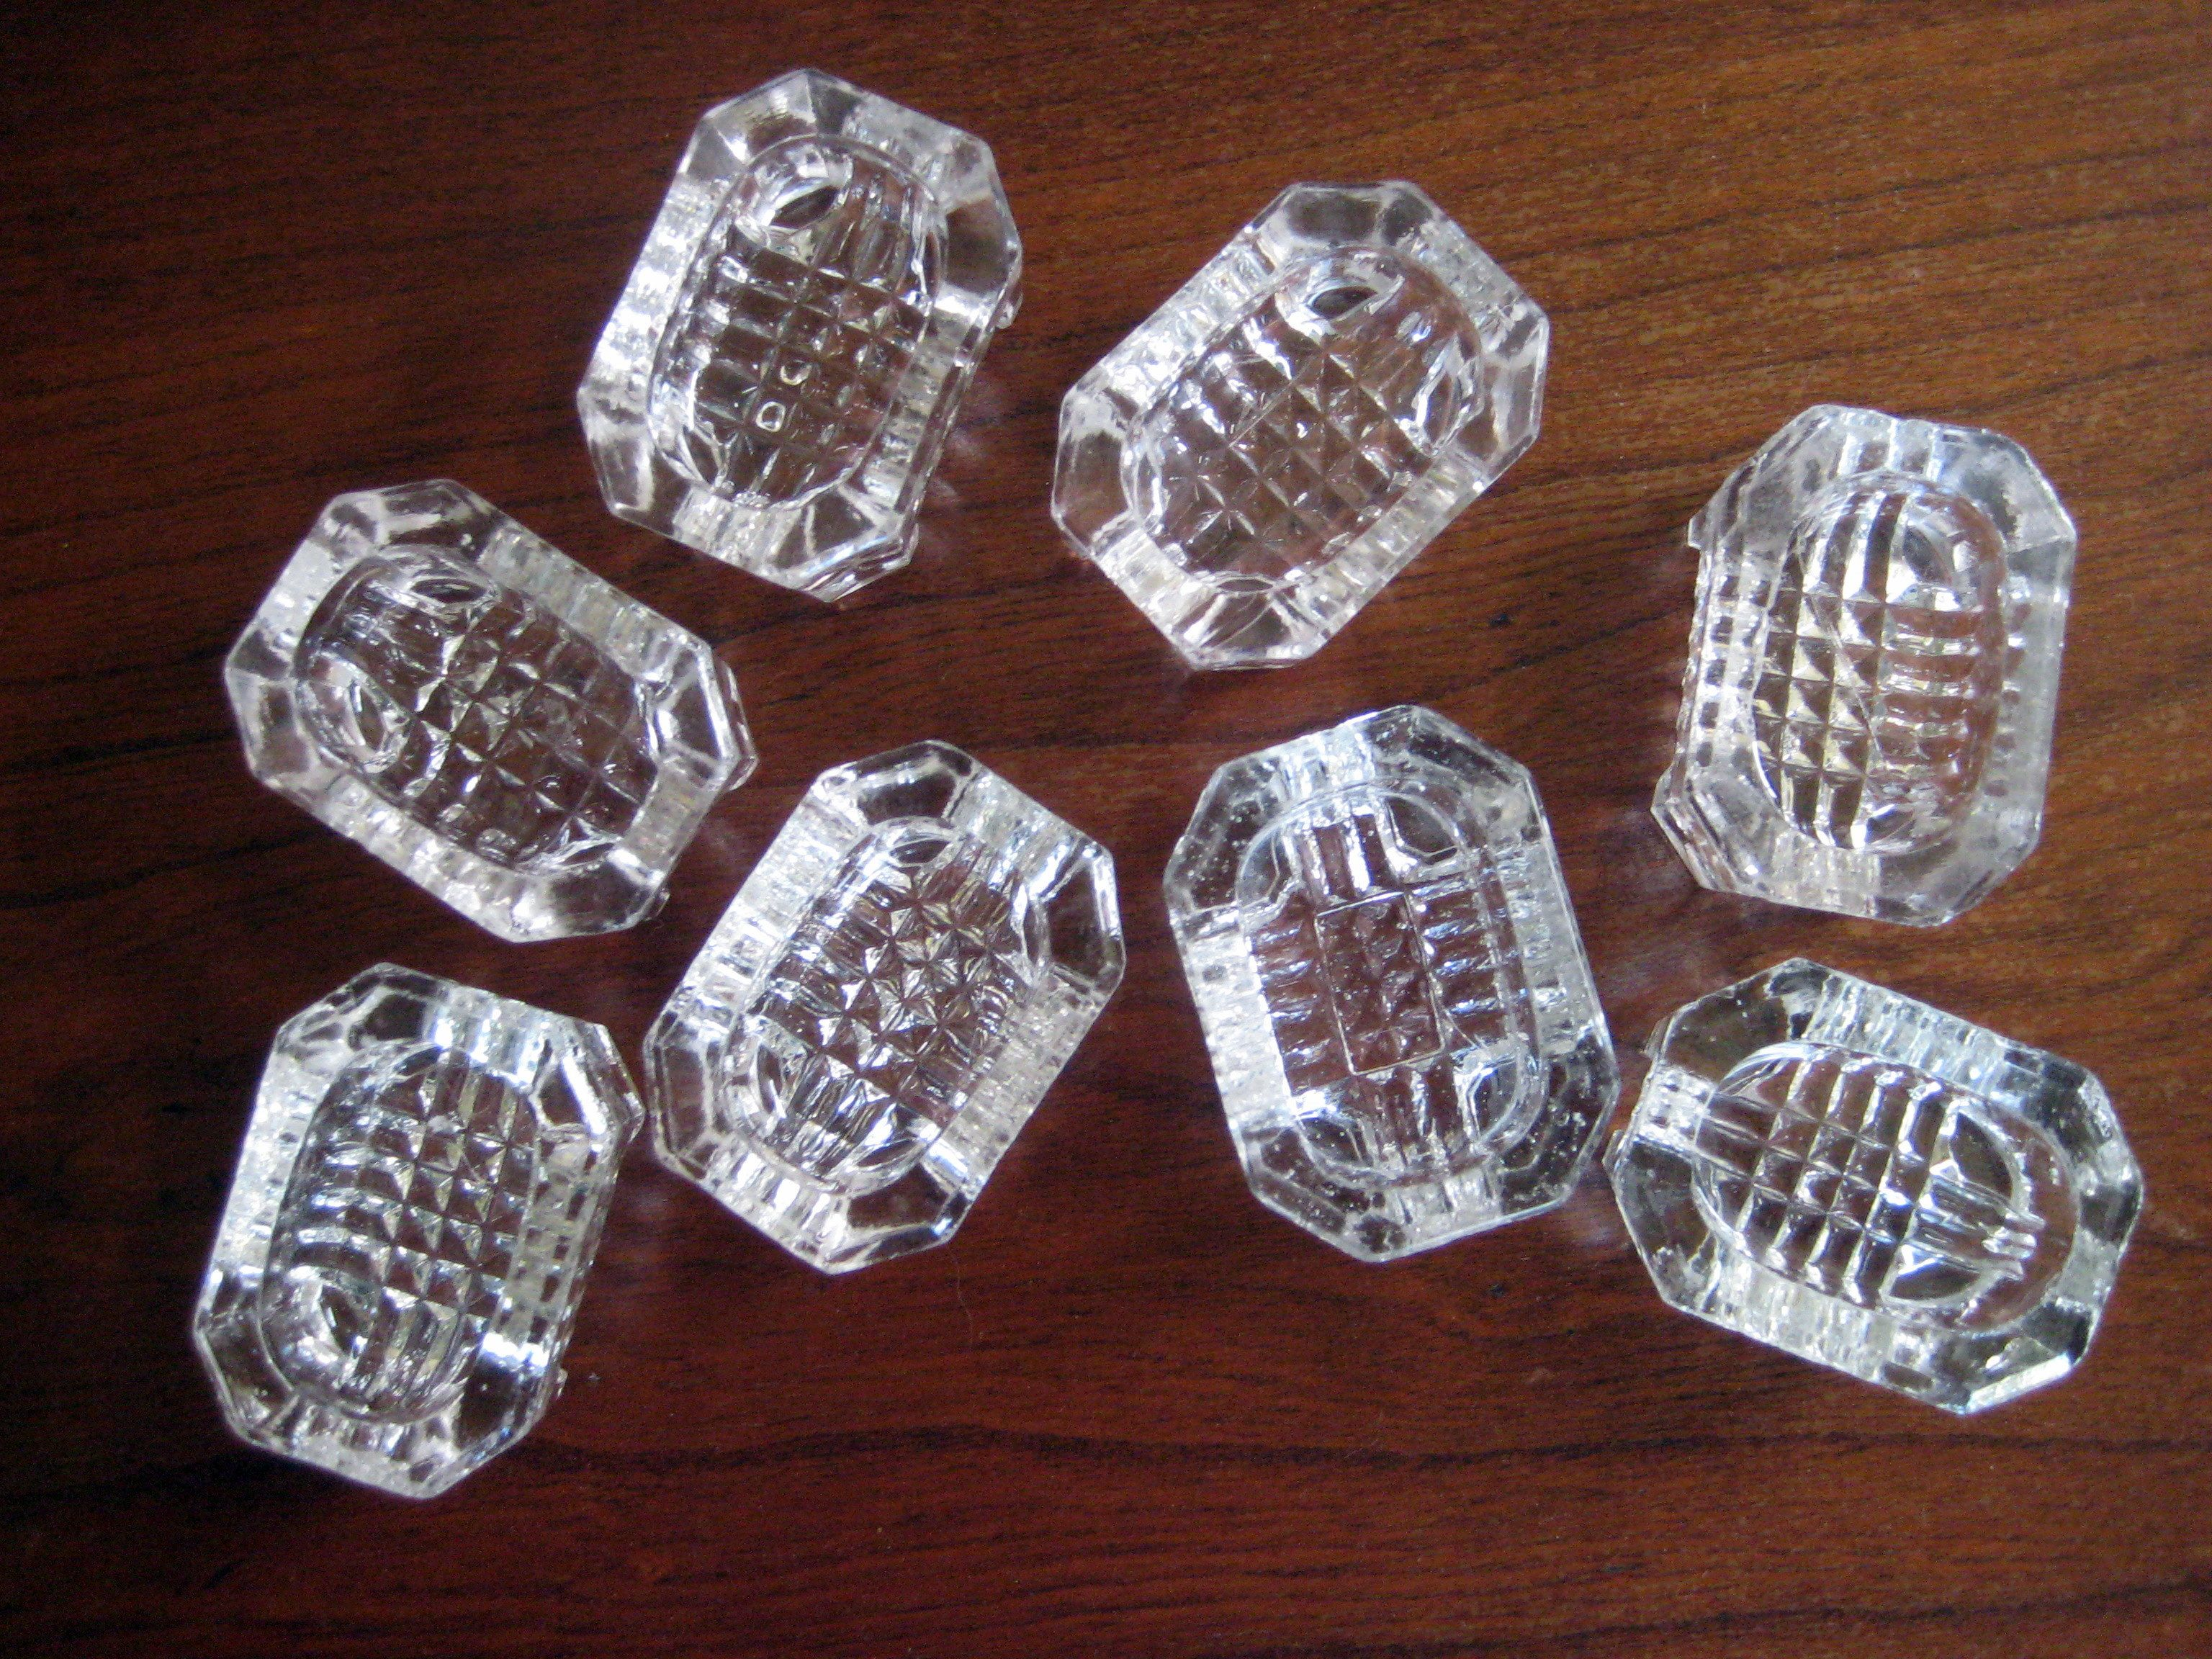 Beautiful vintage salt cellars set of 4 - A Salt Cellar Also Called Standing Salt Is A Vessel Usually Small And Made Of Glass Or Silver Used On The Table For Holding Salt